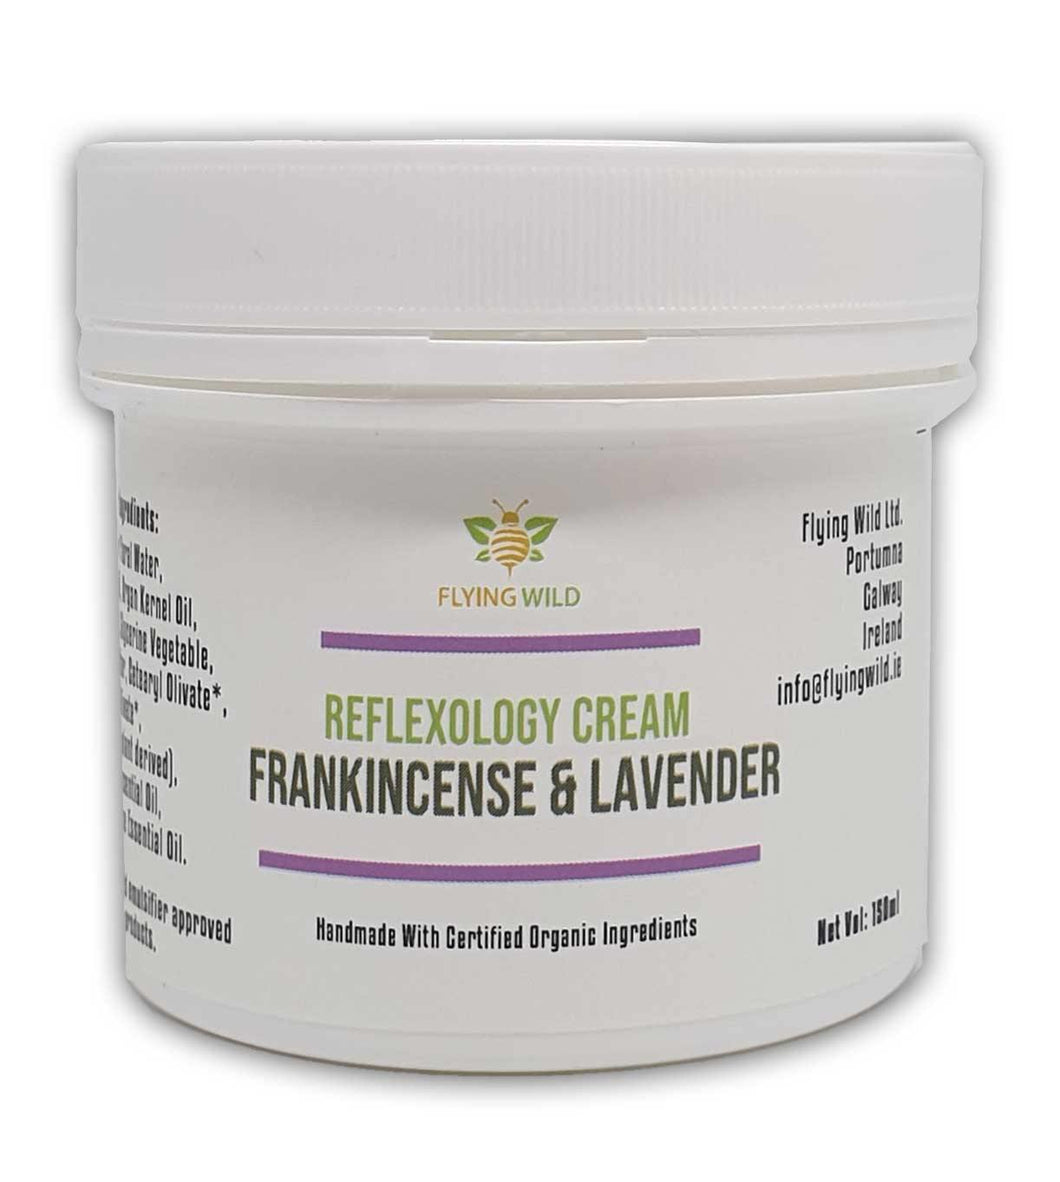 Reflexology Cream Frankincense & Lavender - flyingwild